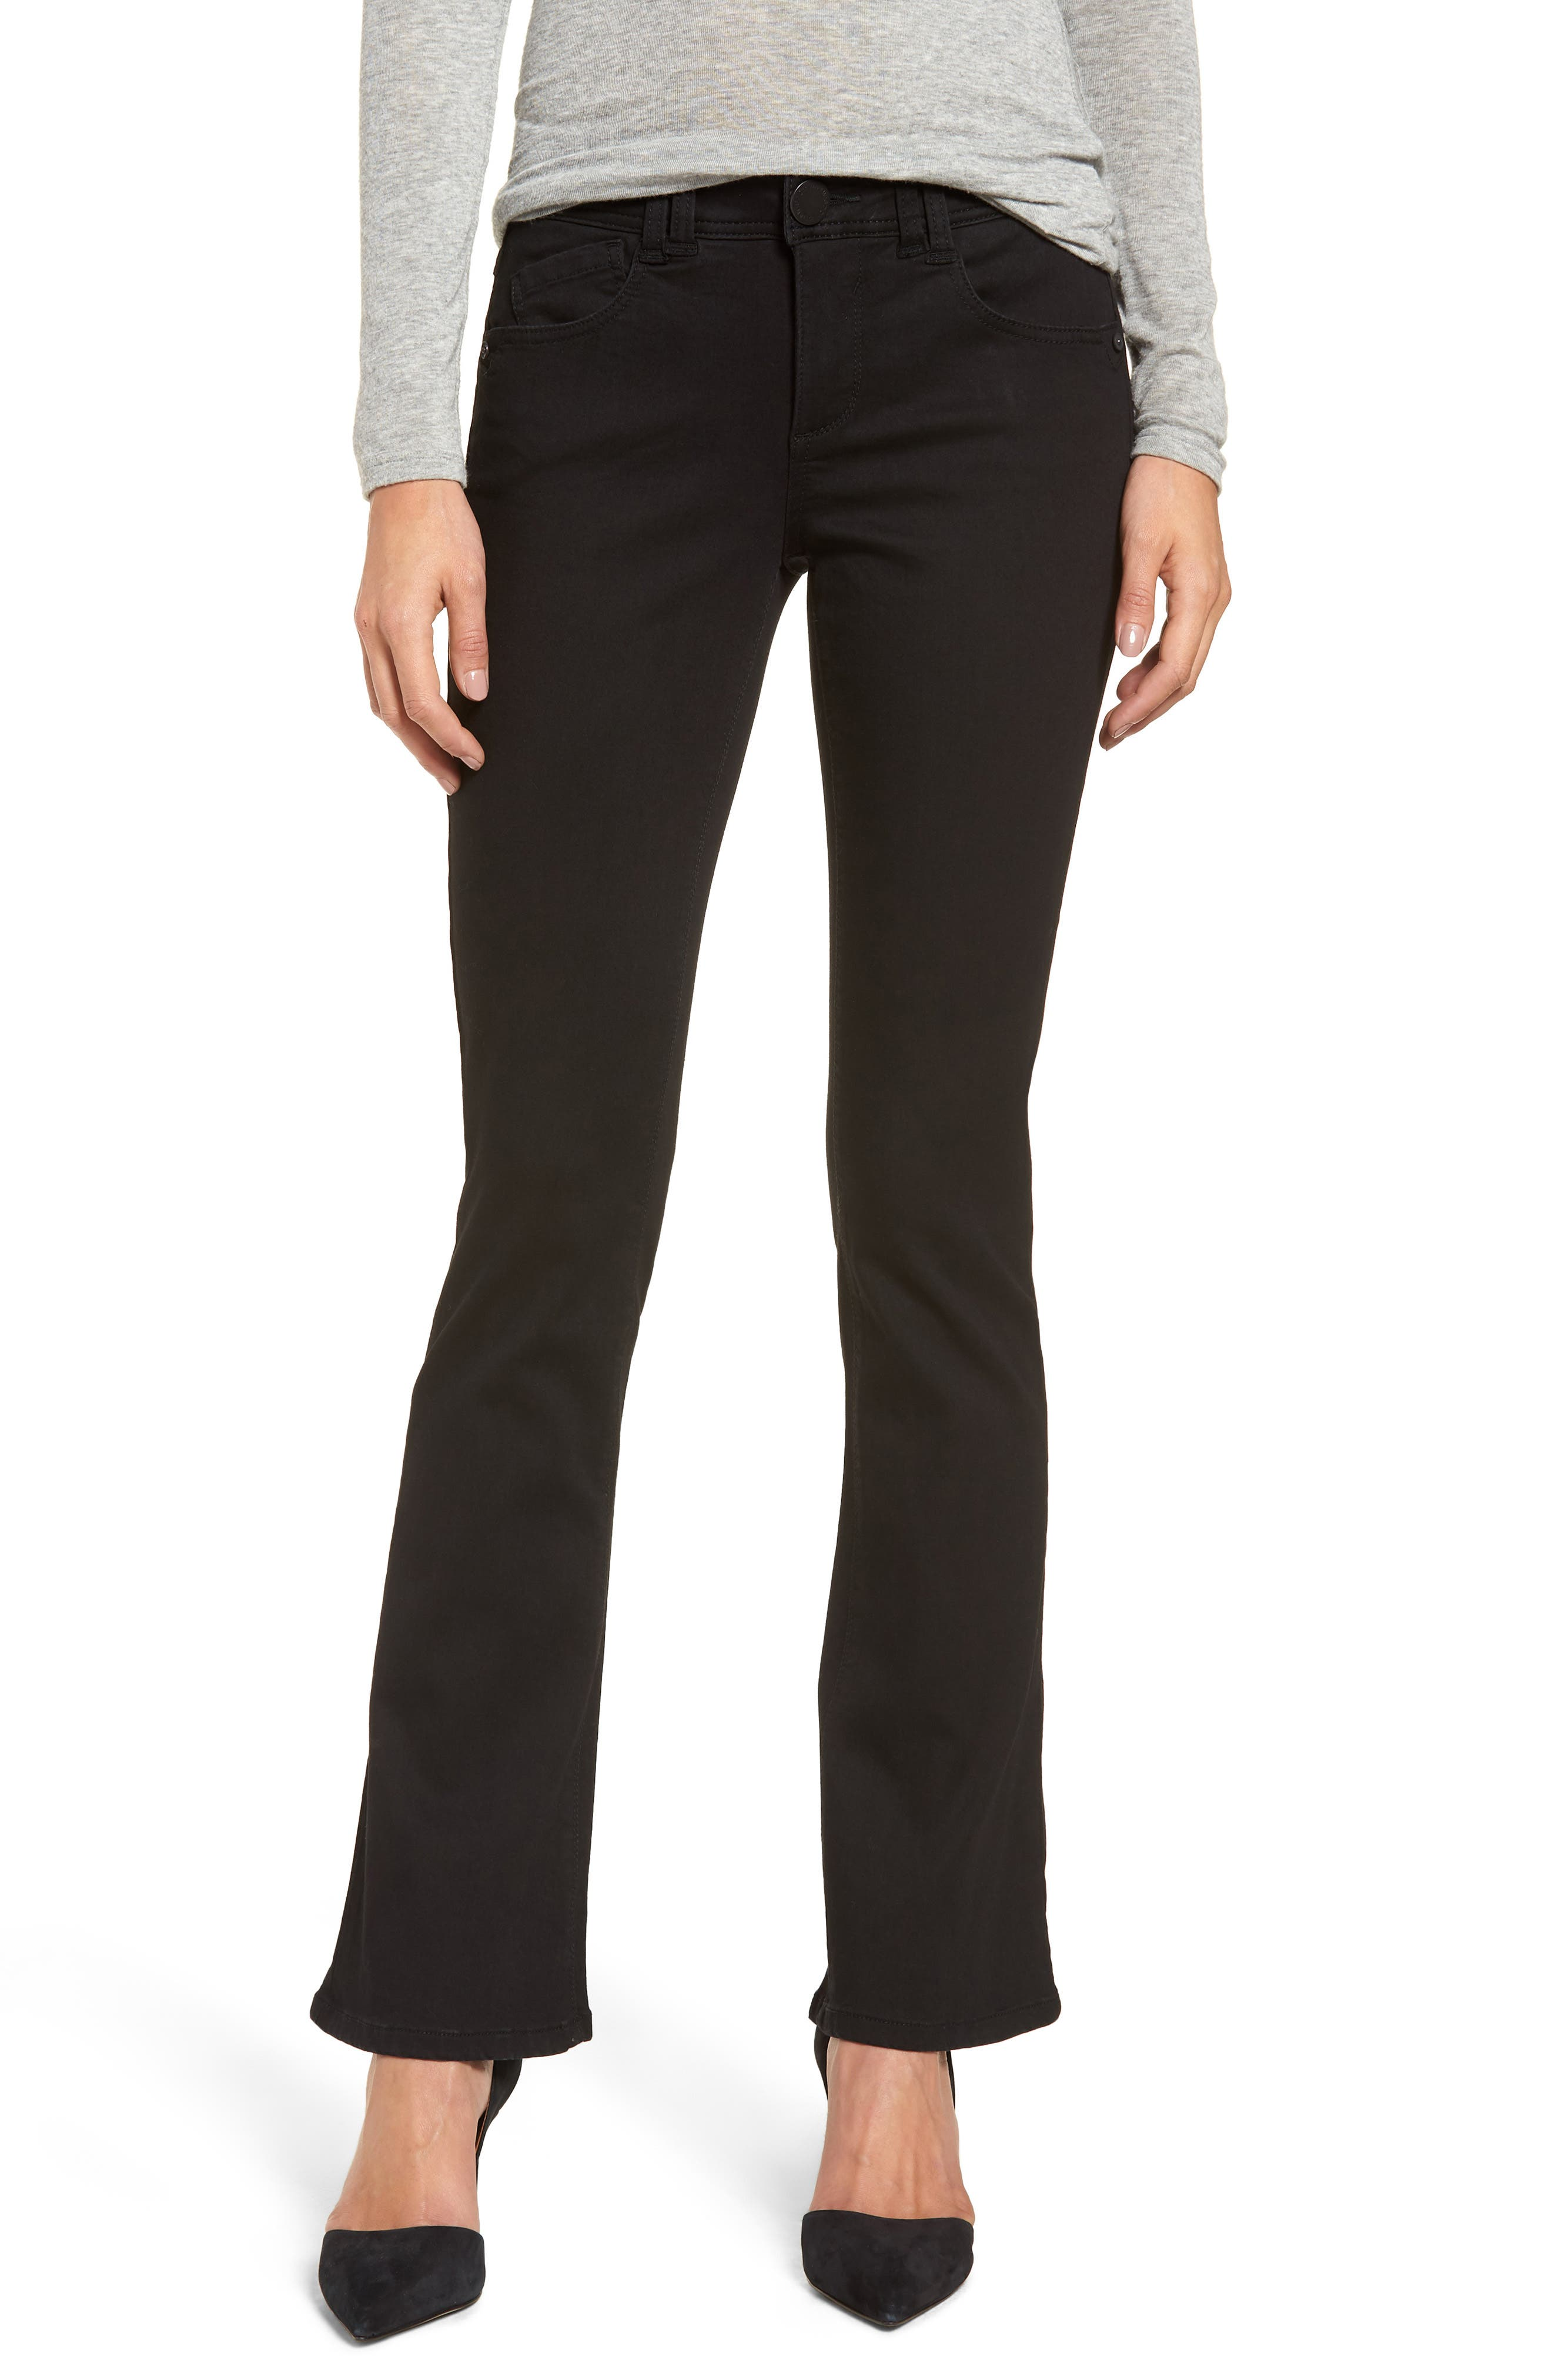 Ab-solution Itty Bitty Bootcut Jeans WIT & WISDOM $68